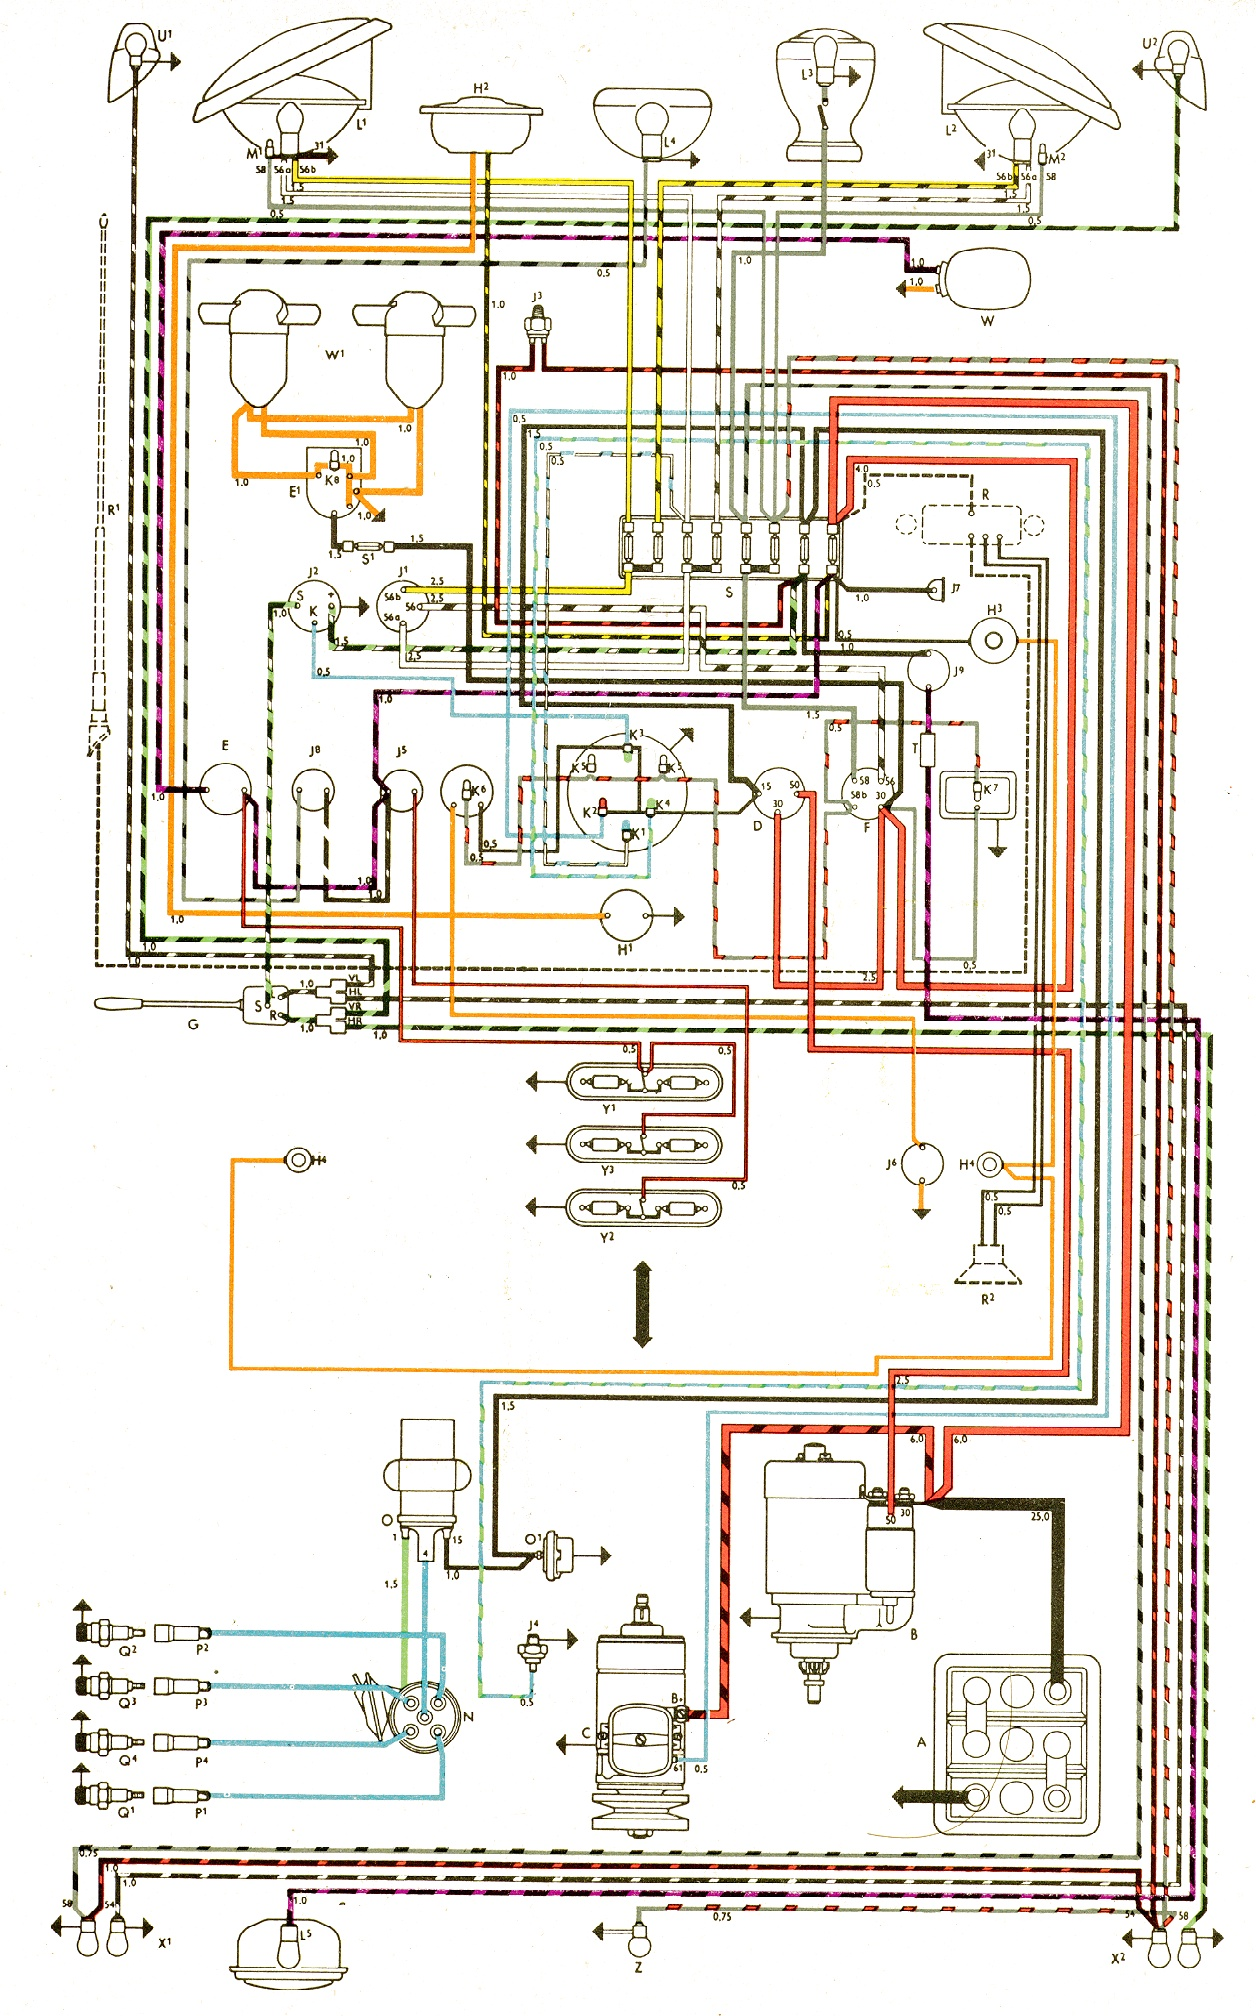 Diagram Additionally 1971 Vw Bus Wiring Diagram On 1967 Vw Fuse Box